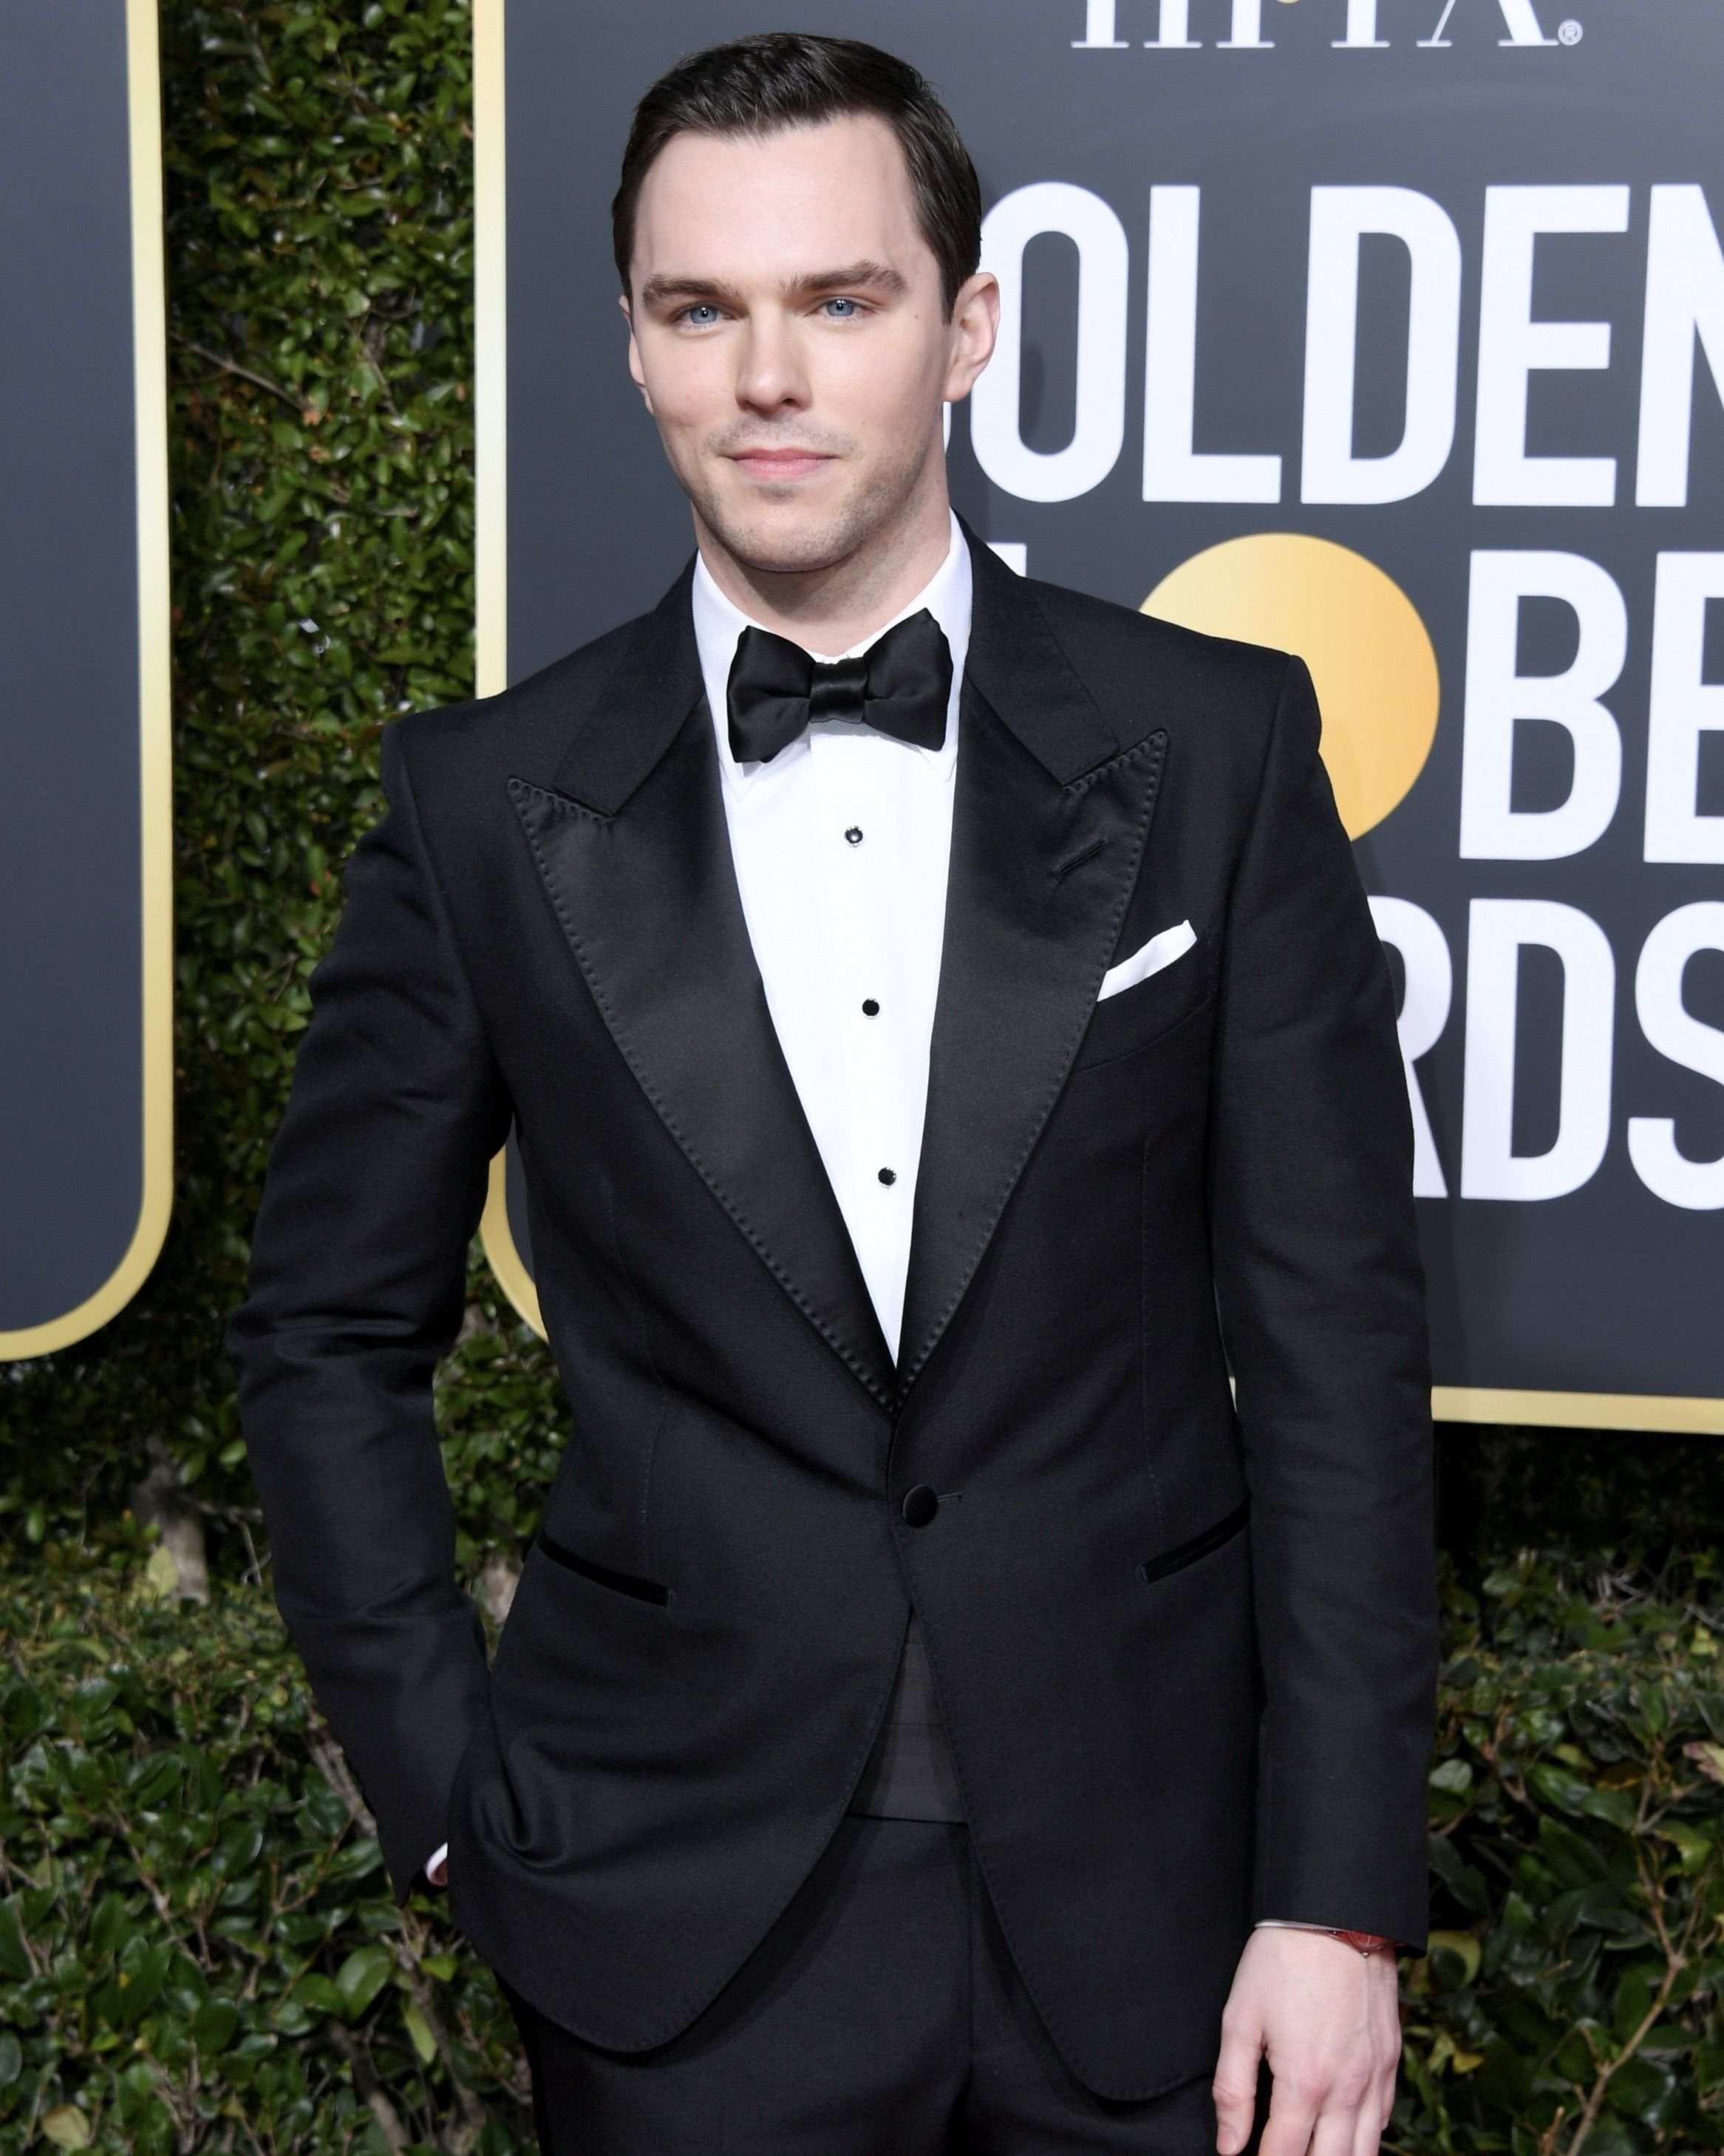 978b2025a30e Nicholas Hoult wore a TOM FORD Atticus peak lapel tuxedo to the 76th Annual  Golden Globes Awards.  TOMFORD  GoldenGlobes